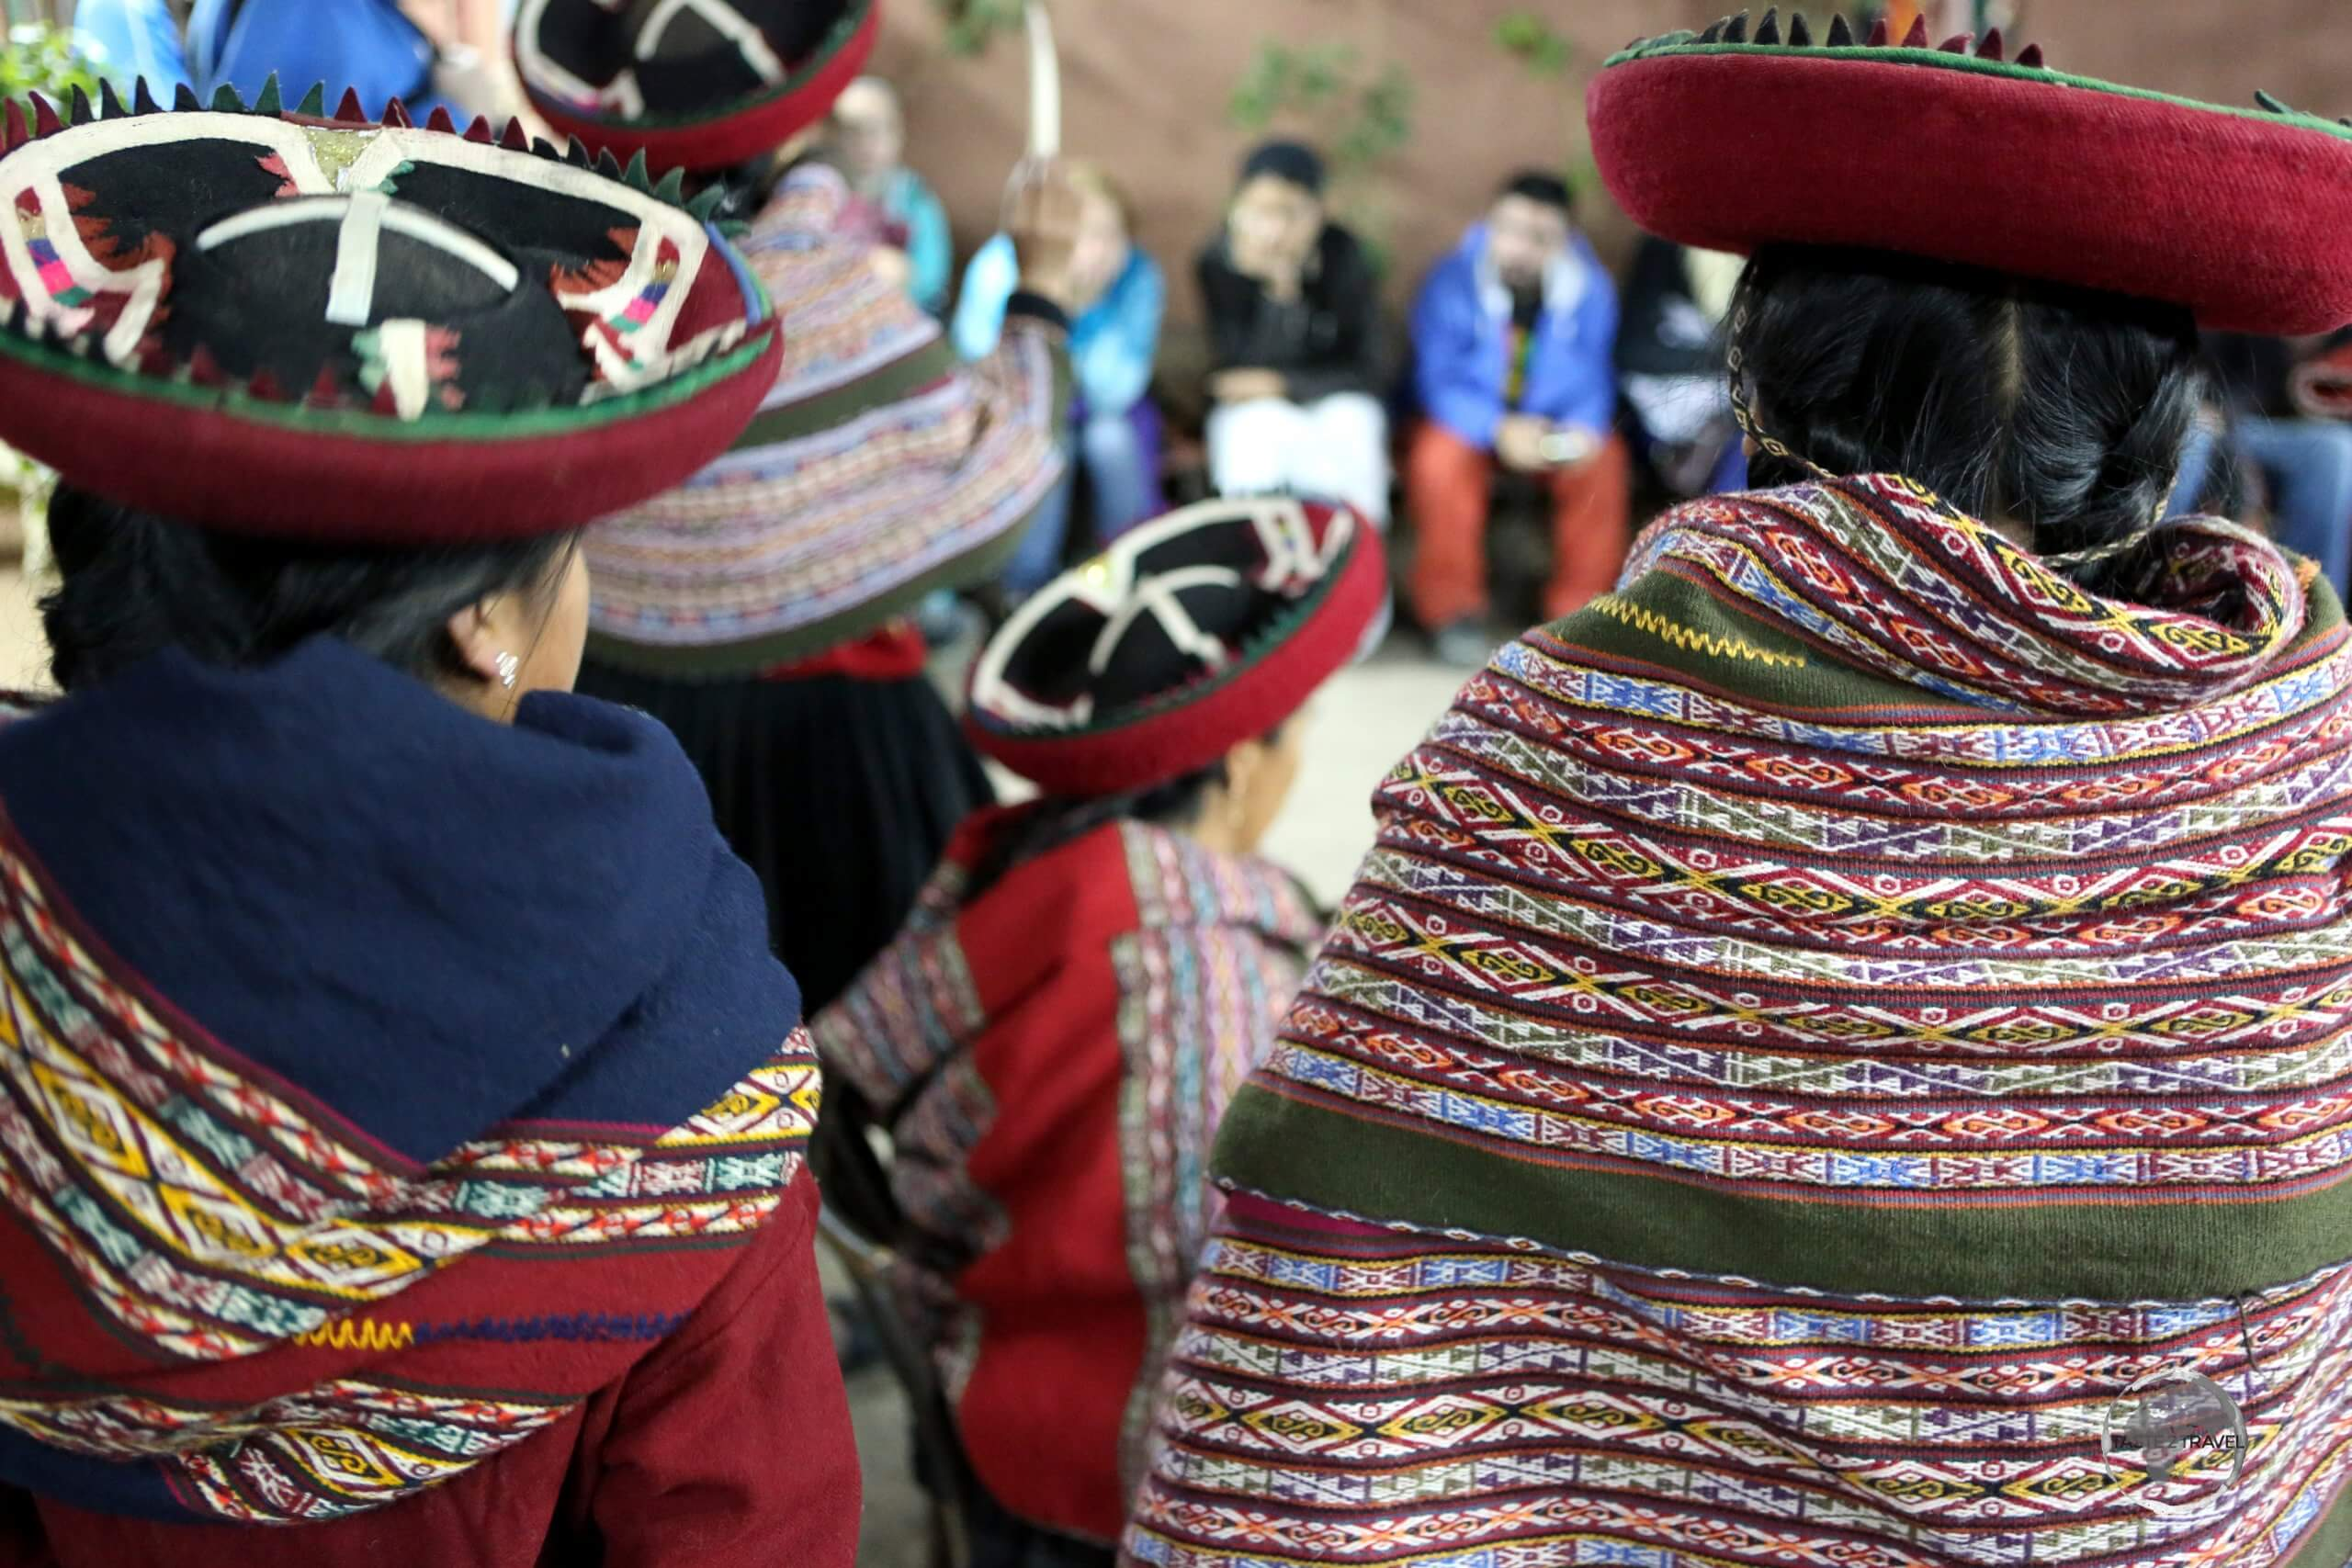 Quechua weavers at the 'Chinchero Centre for Traditional Culture', wearing their woven garments, which they sell to visiting tourists.